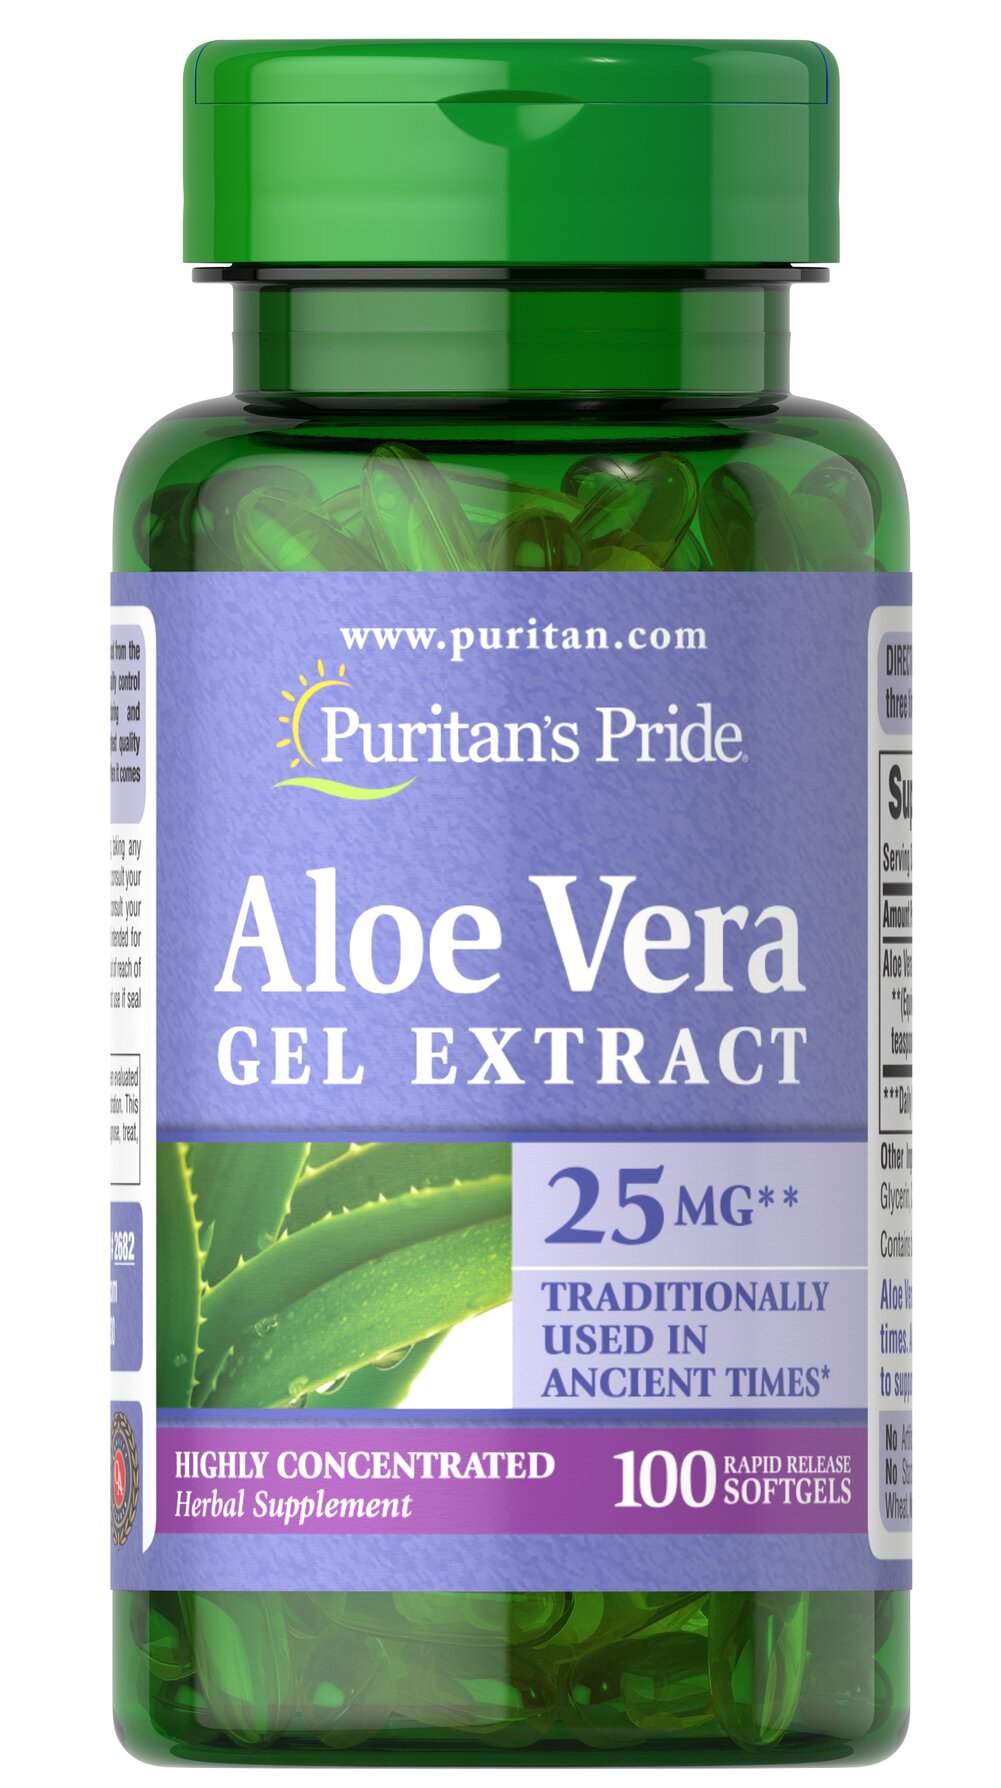 Aloe Vera Extract 25 mg  100 Softgels 25 mg $8.39